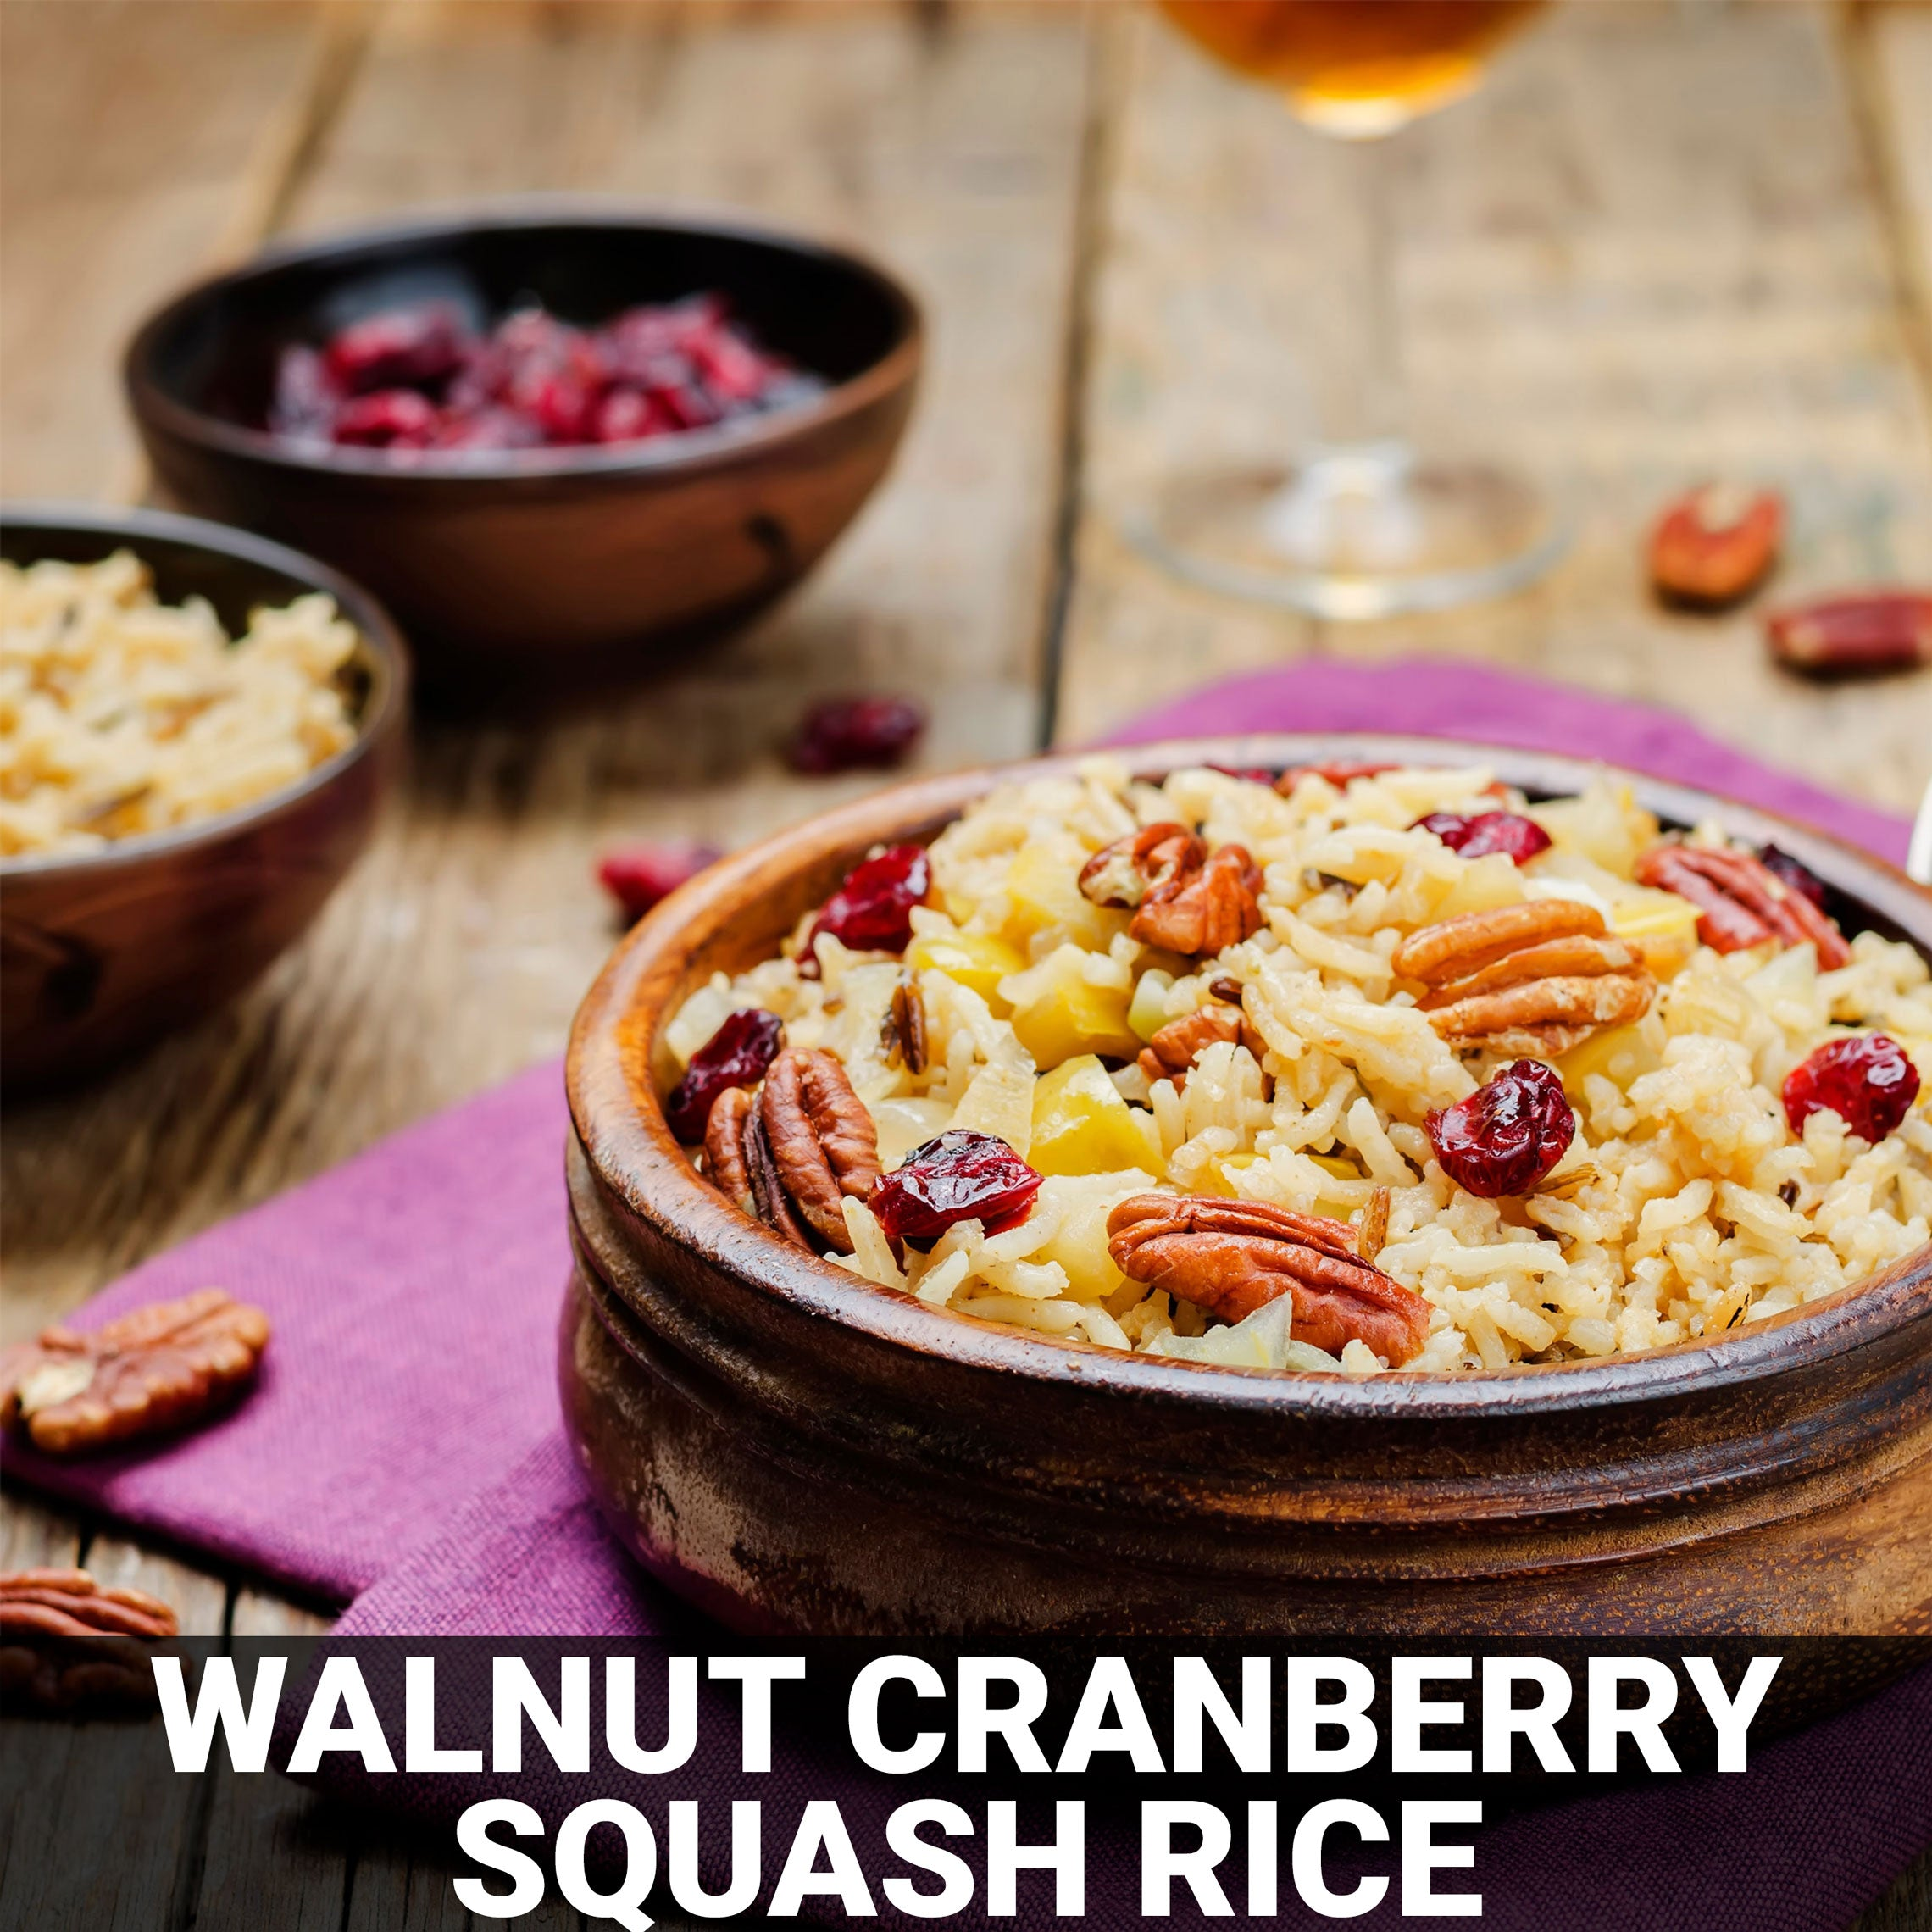 Walnut Cranberry Squash Rice Recipe - Foods Alive